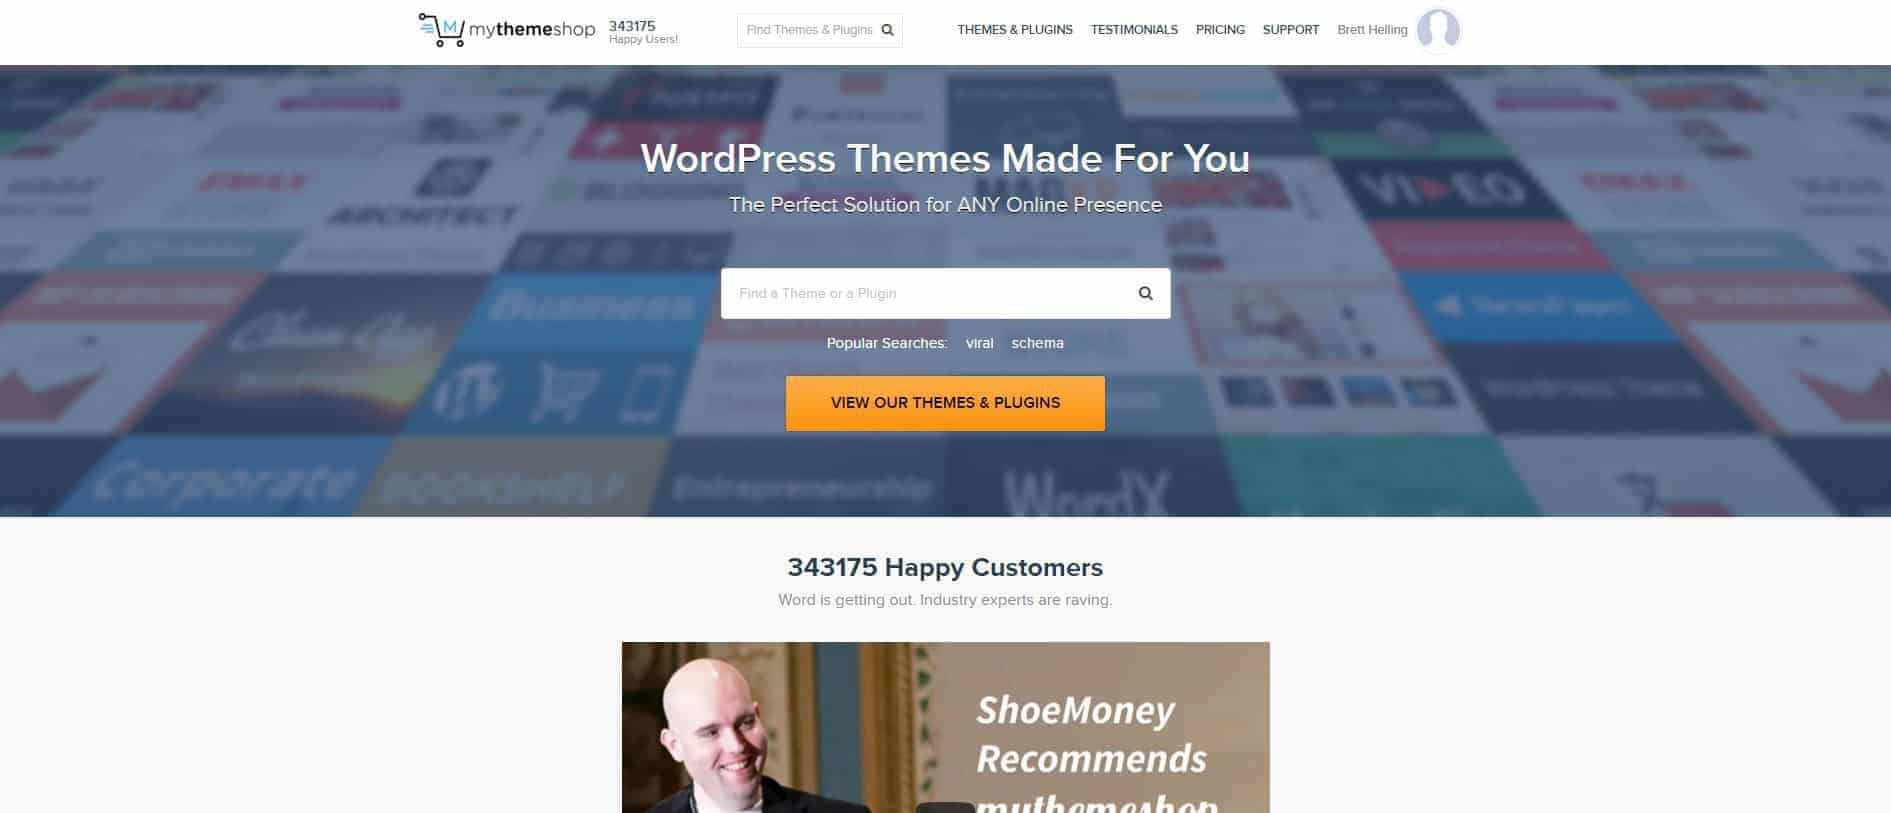 Mythemeshop screenshot of homepage for the best MyThemeShop themes of 2016